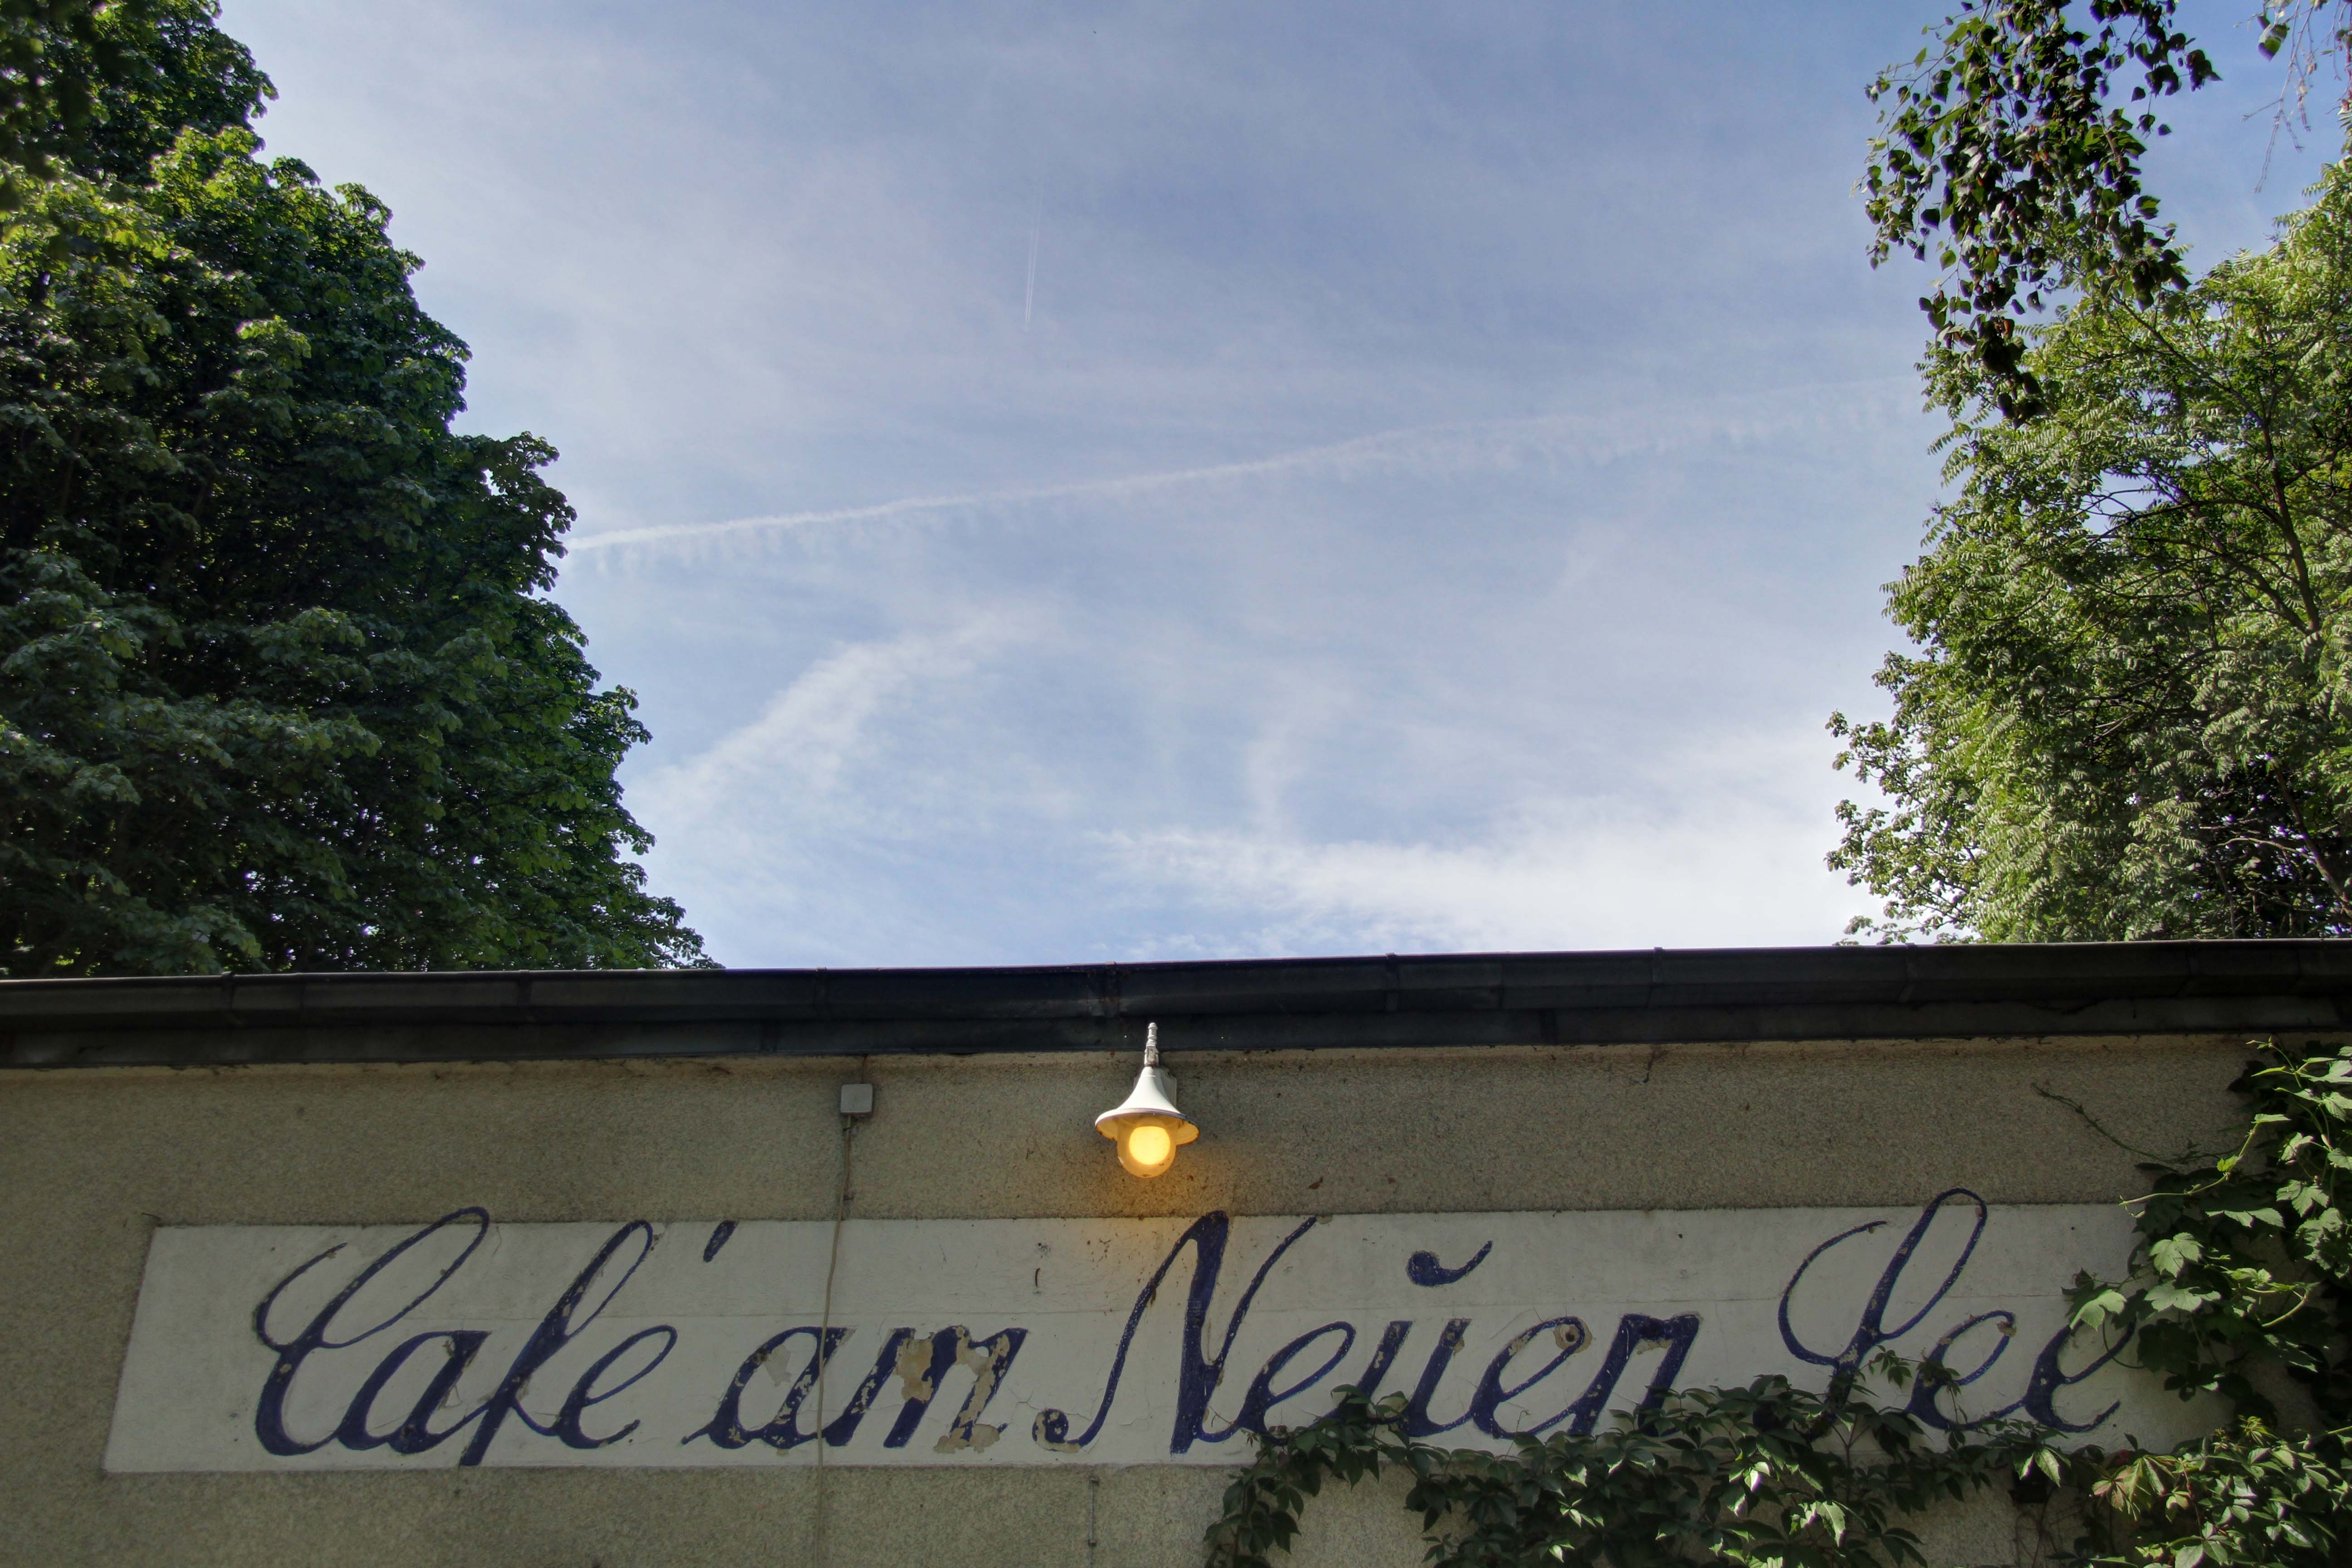 The sign of Café am Neuen See in the Tiergarten in Berlin